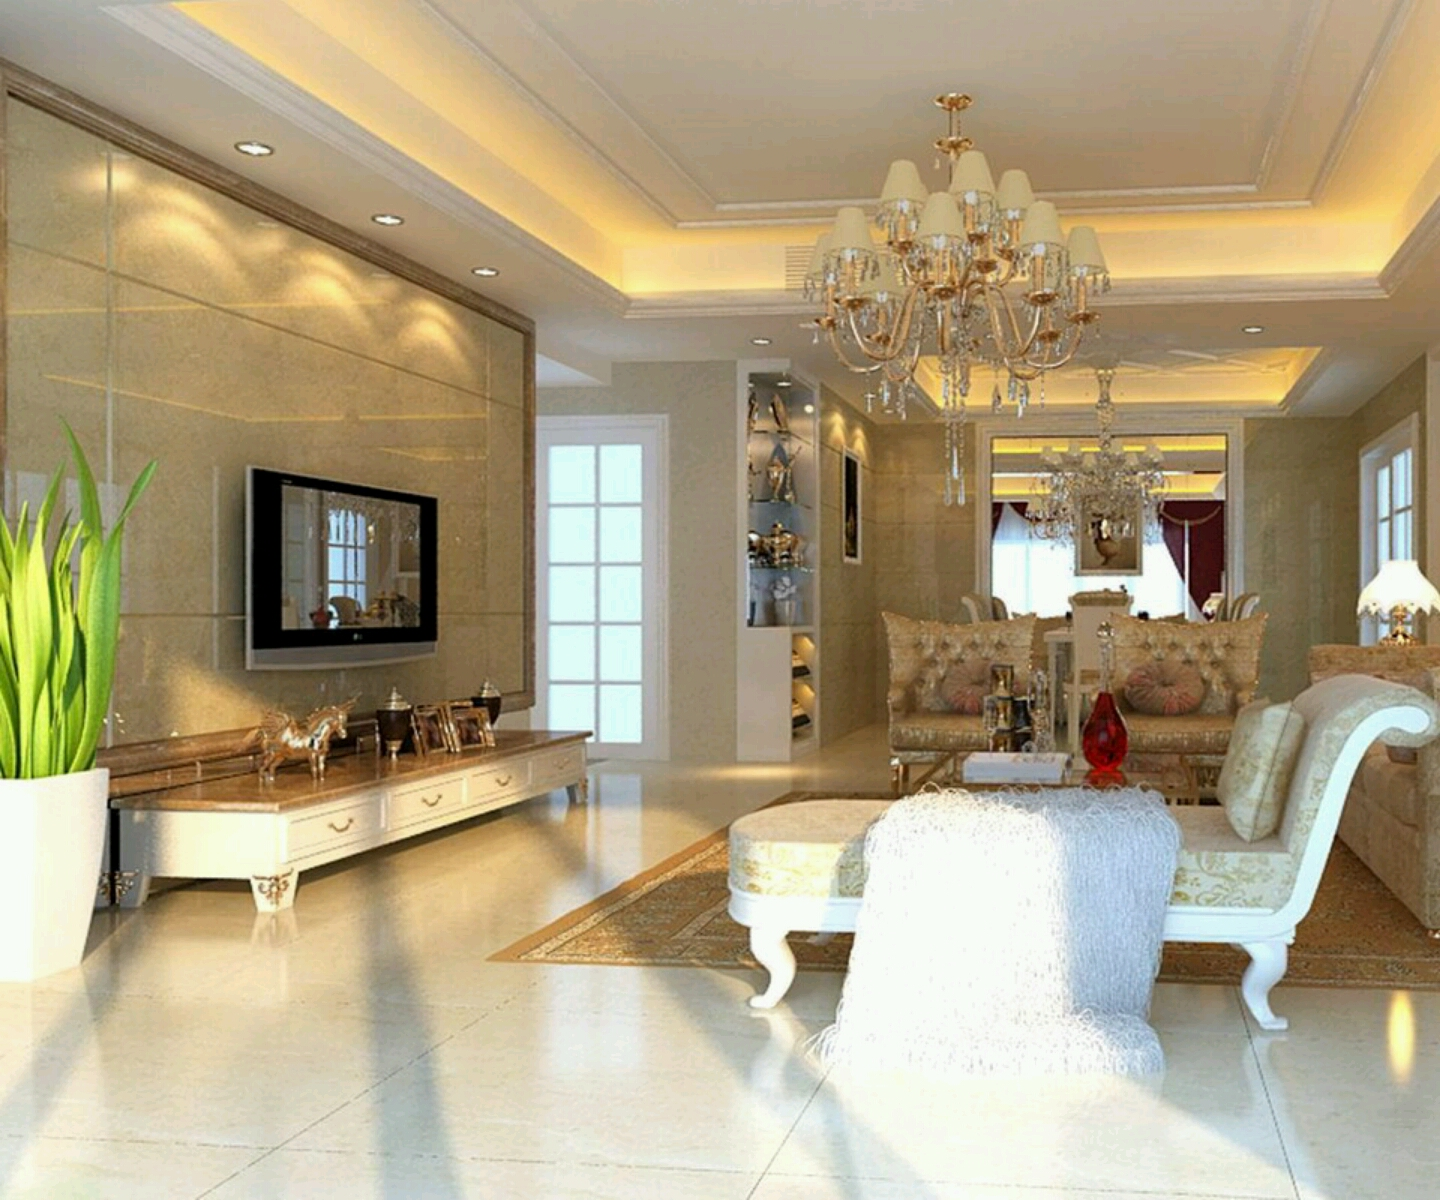 New home designs latest luxury homes interior decoration Interior home decoration